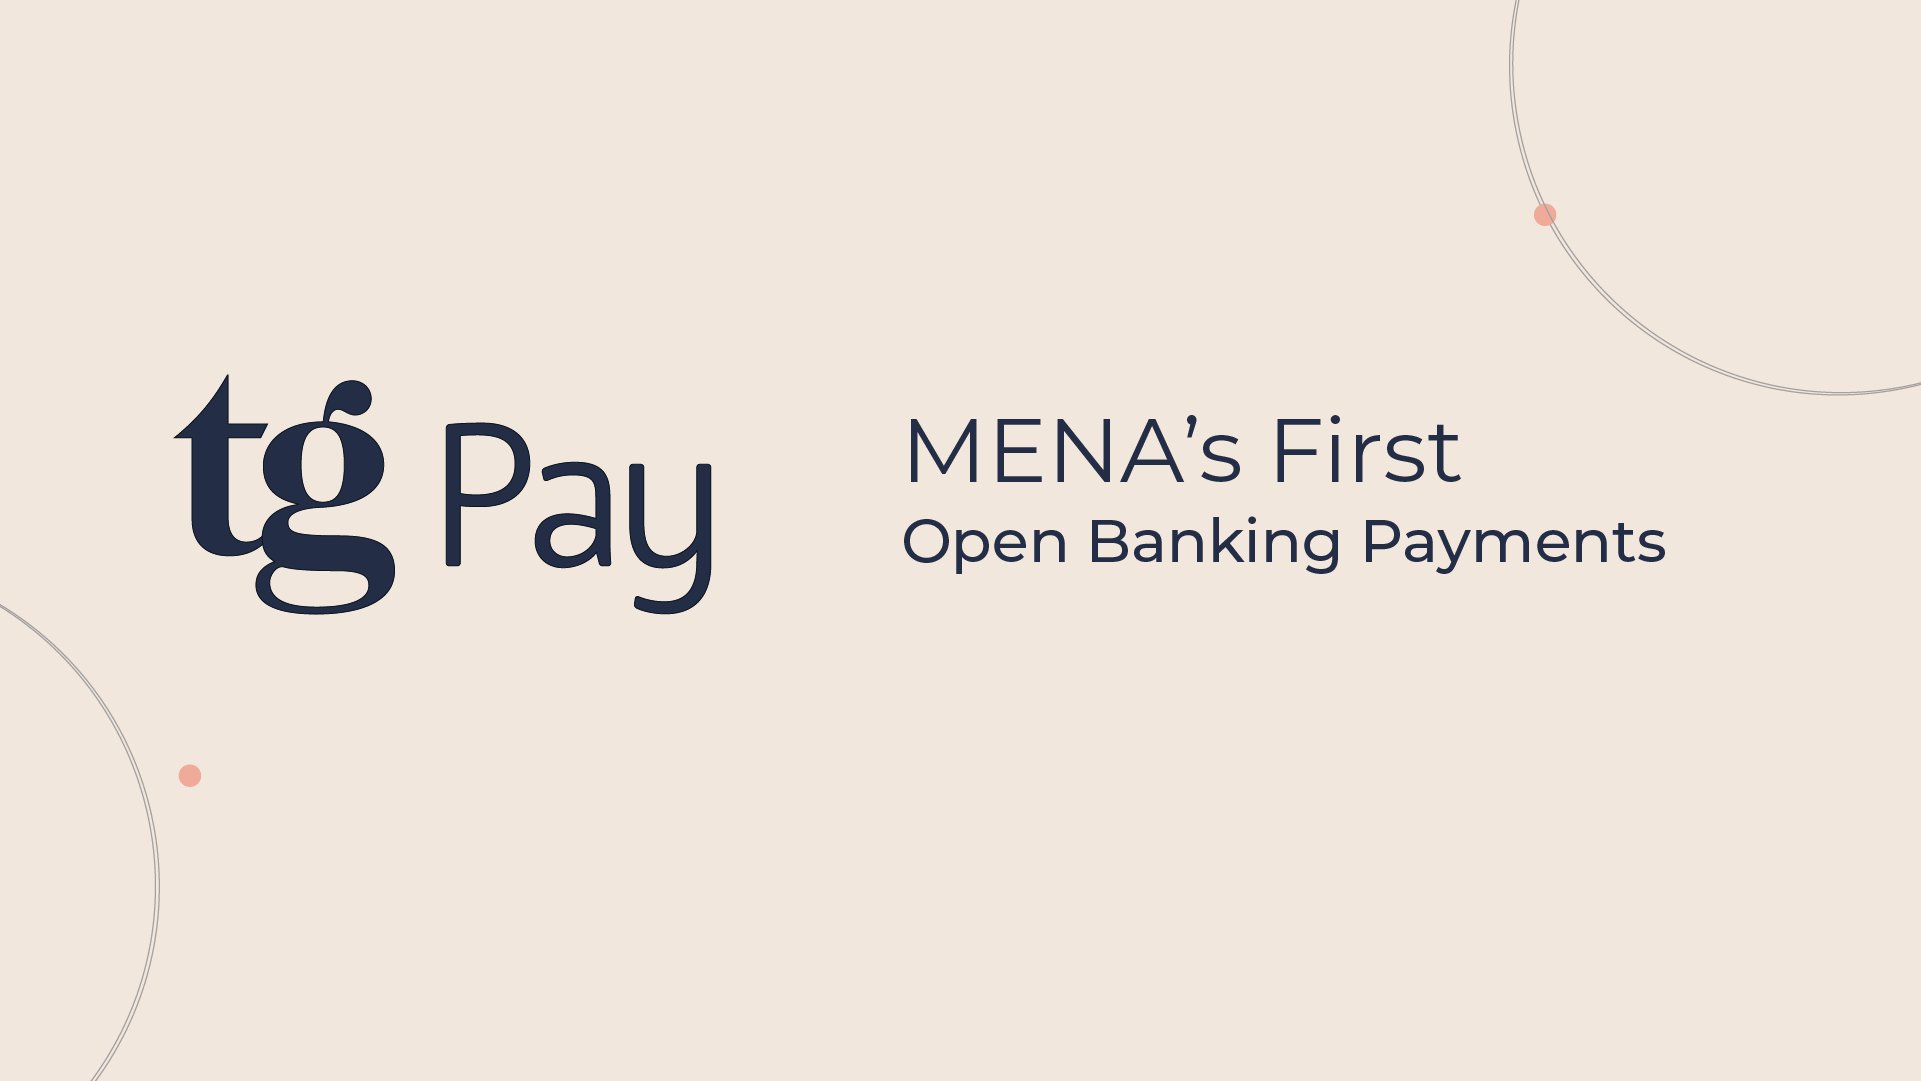 TG Pay: MENA's First Open Banking Payments